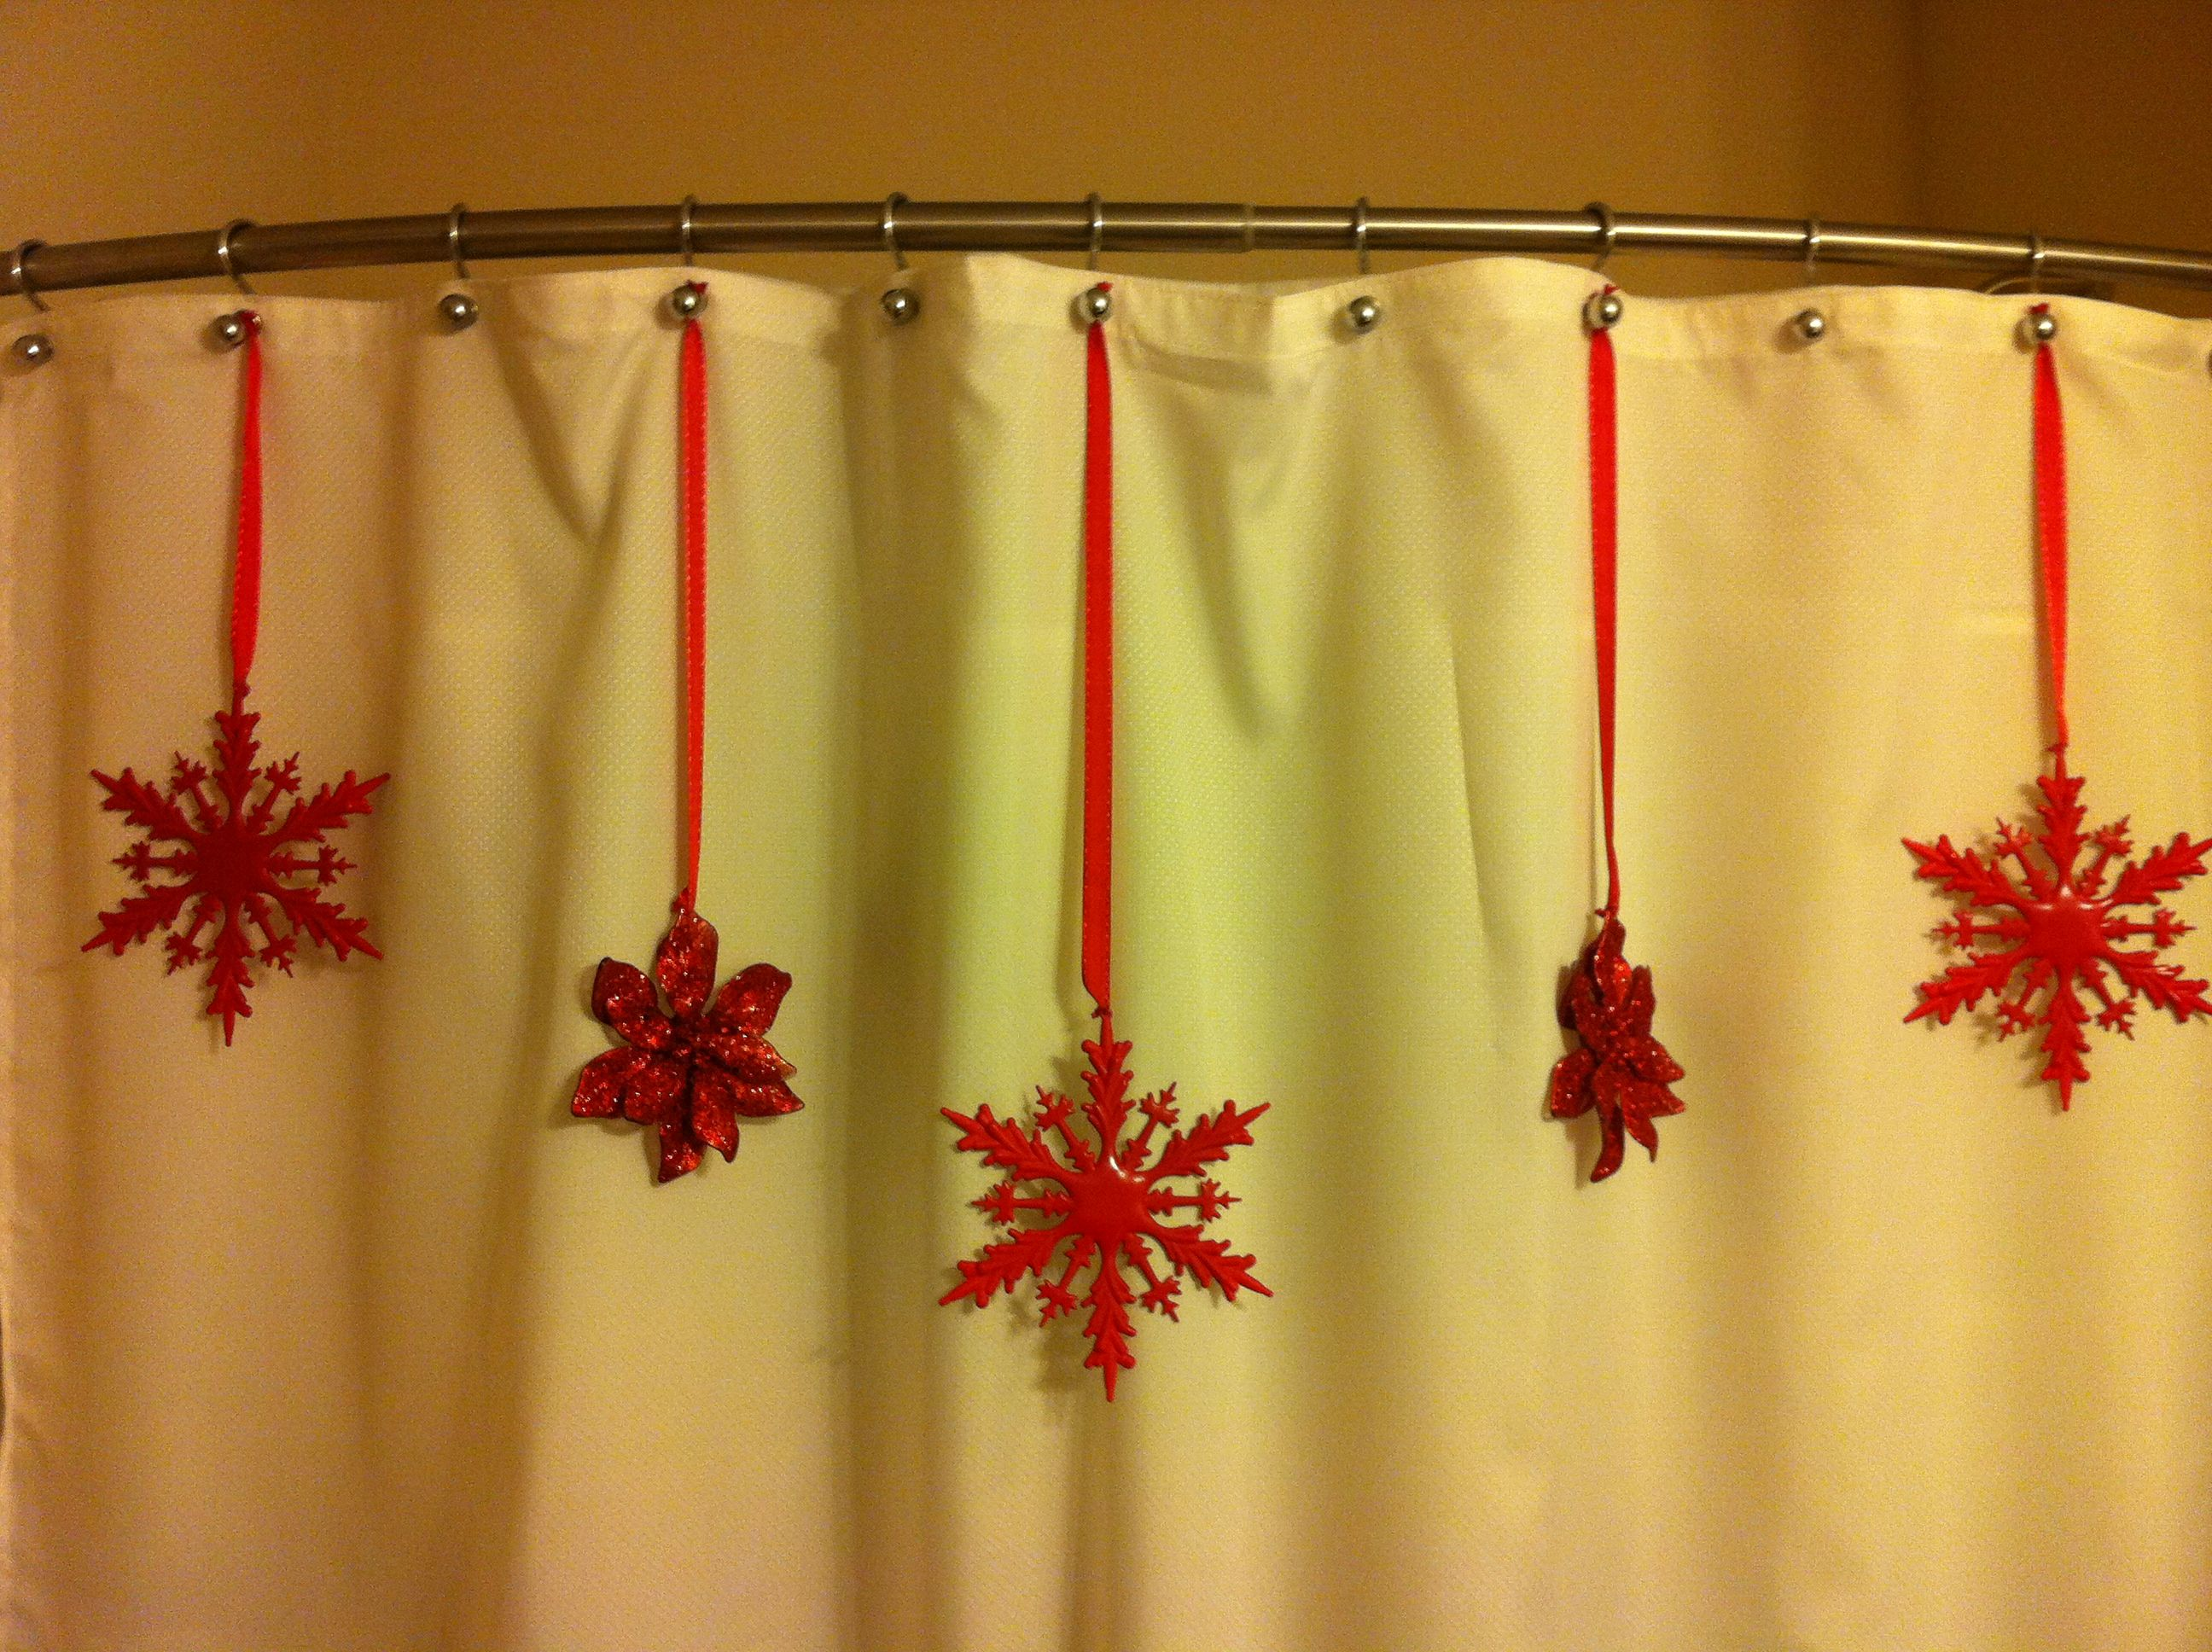 Dollar Store Ornaments On A Shower Curtain Great Way To